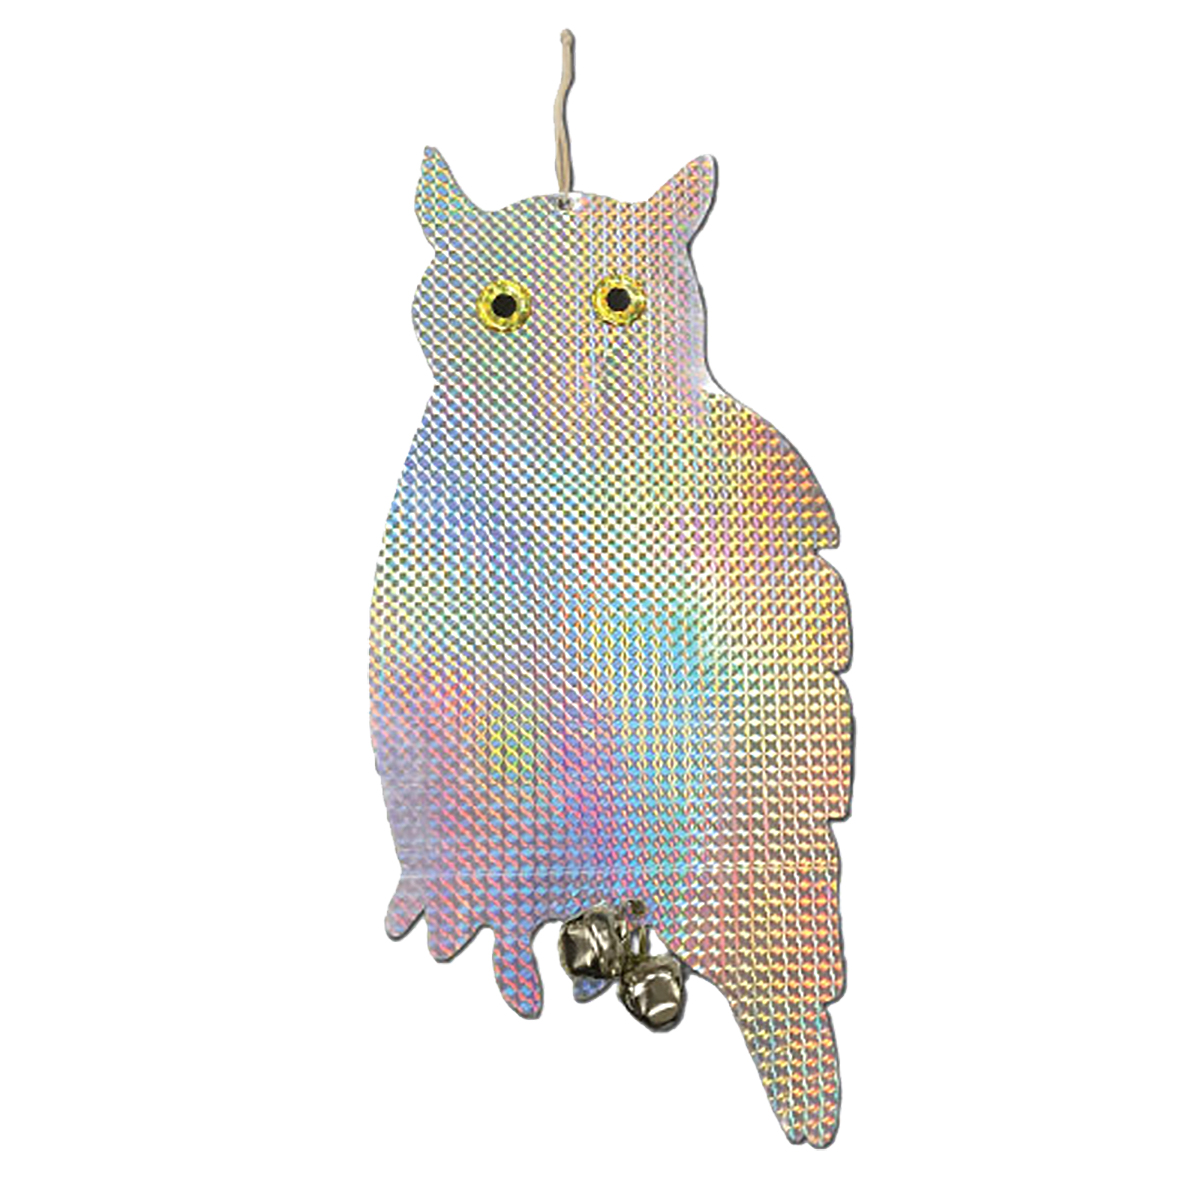 18416 - Relective owl and bell